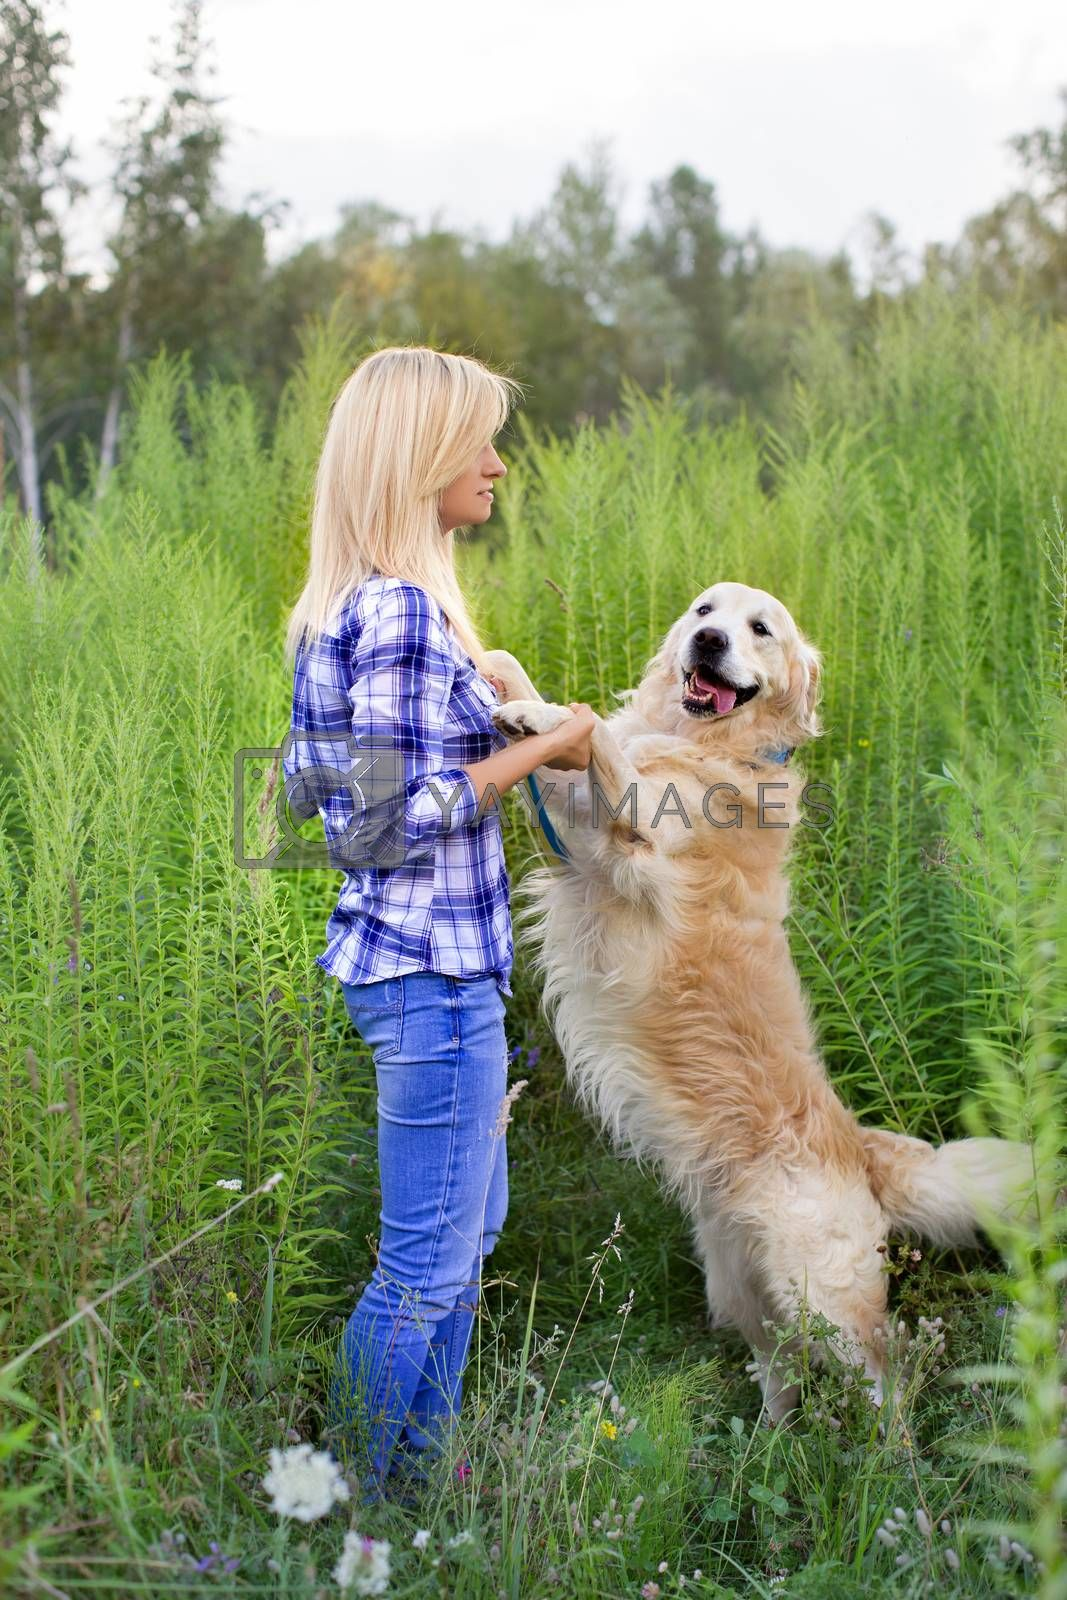 Girl walking with a dog on a green meadow